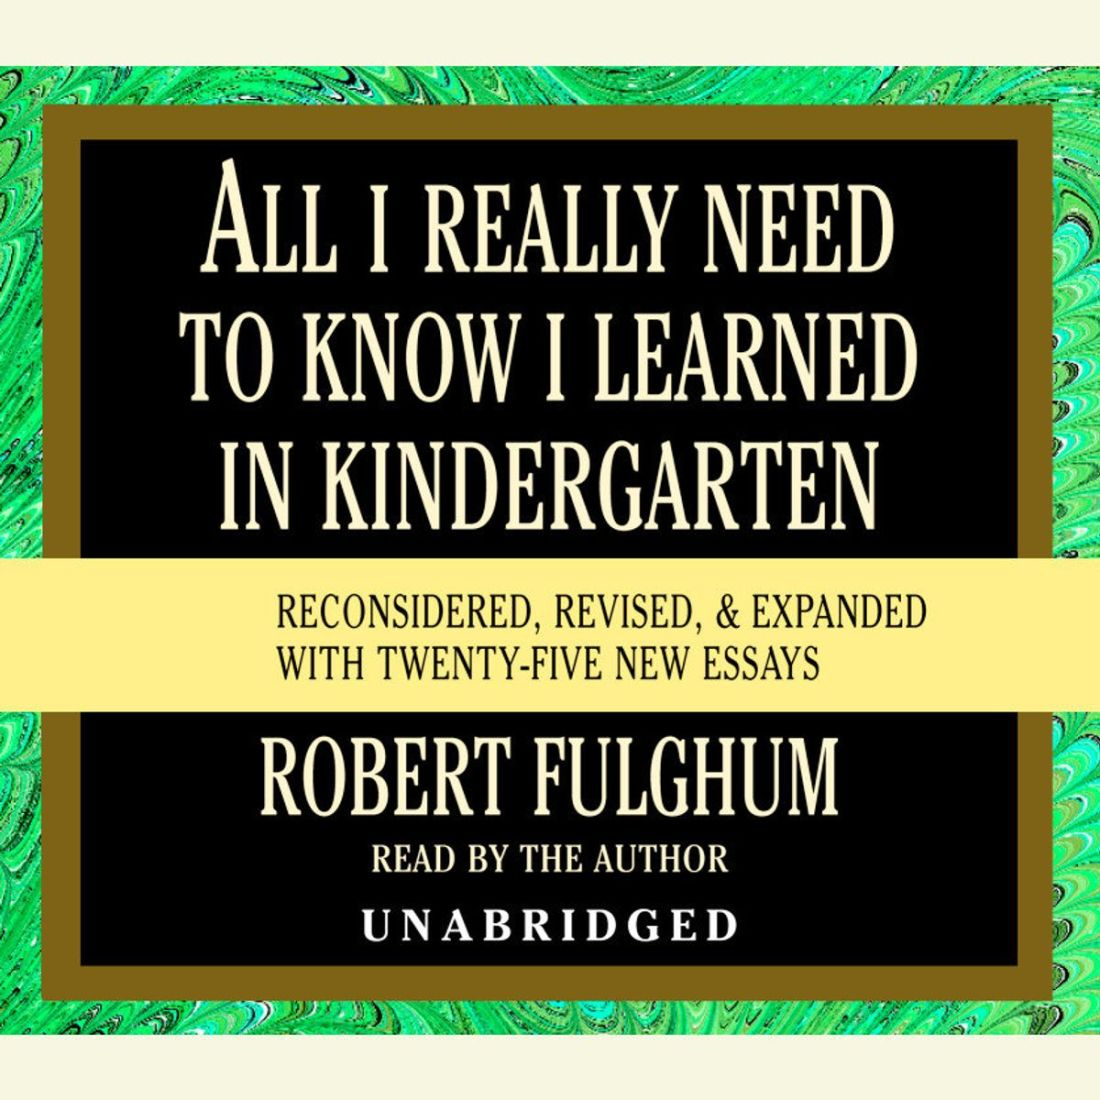 all-i-really-need-to-know-i-learned-in-kindergarten-2